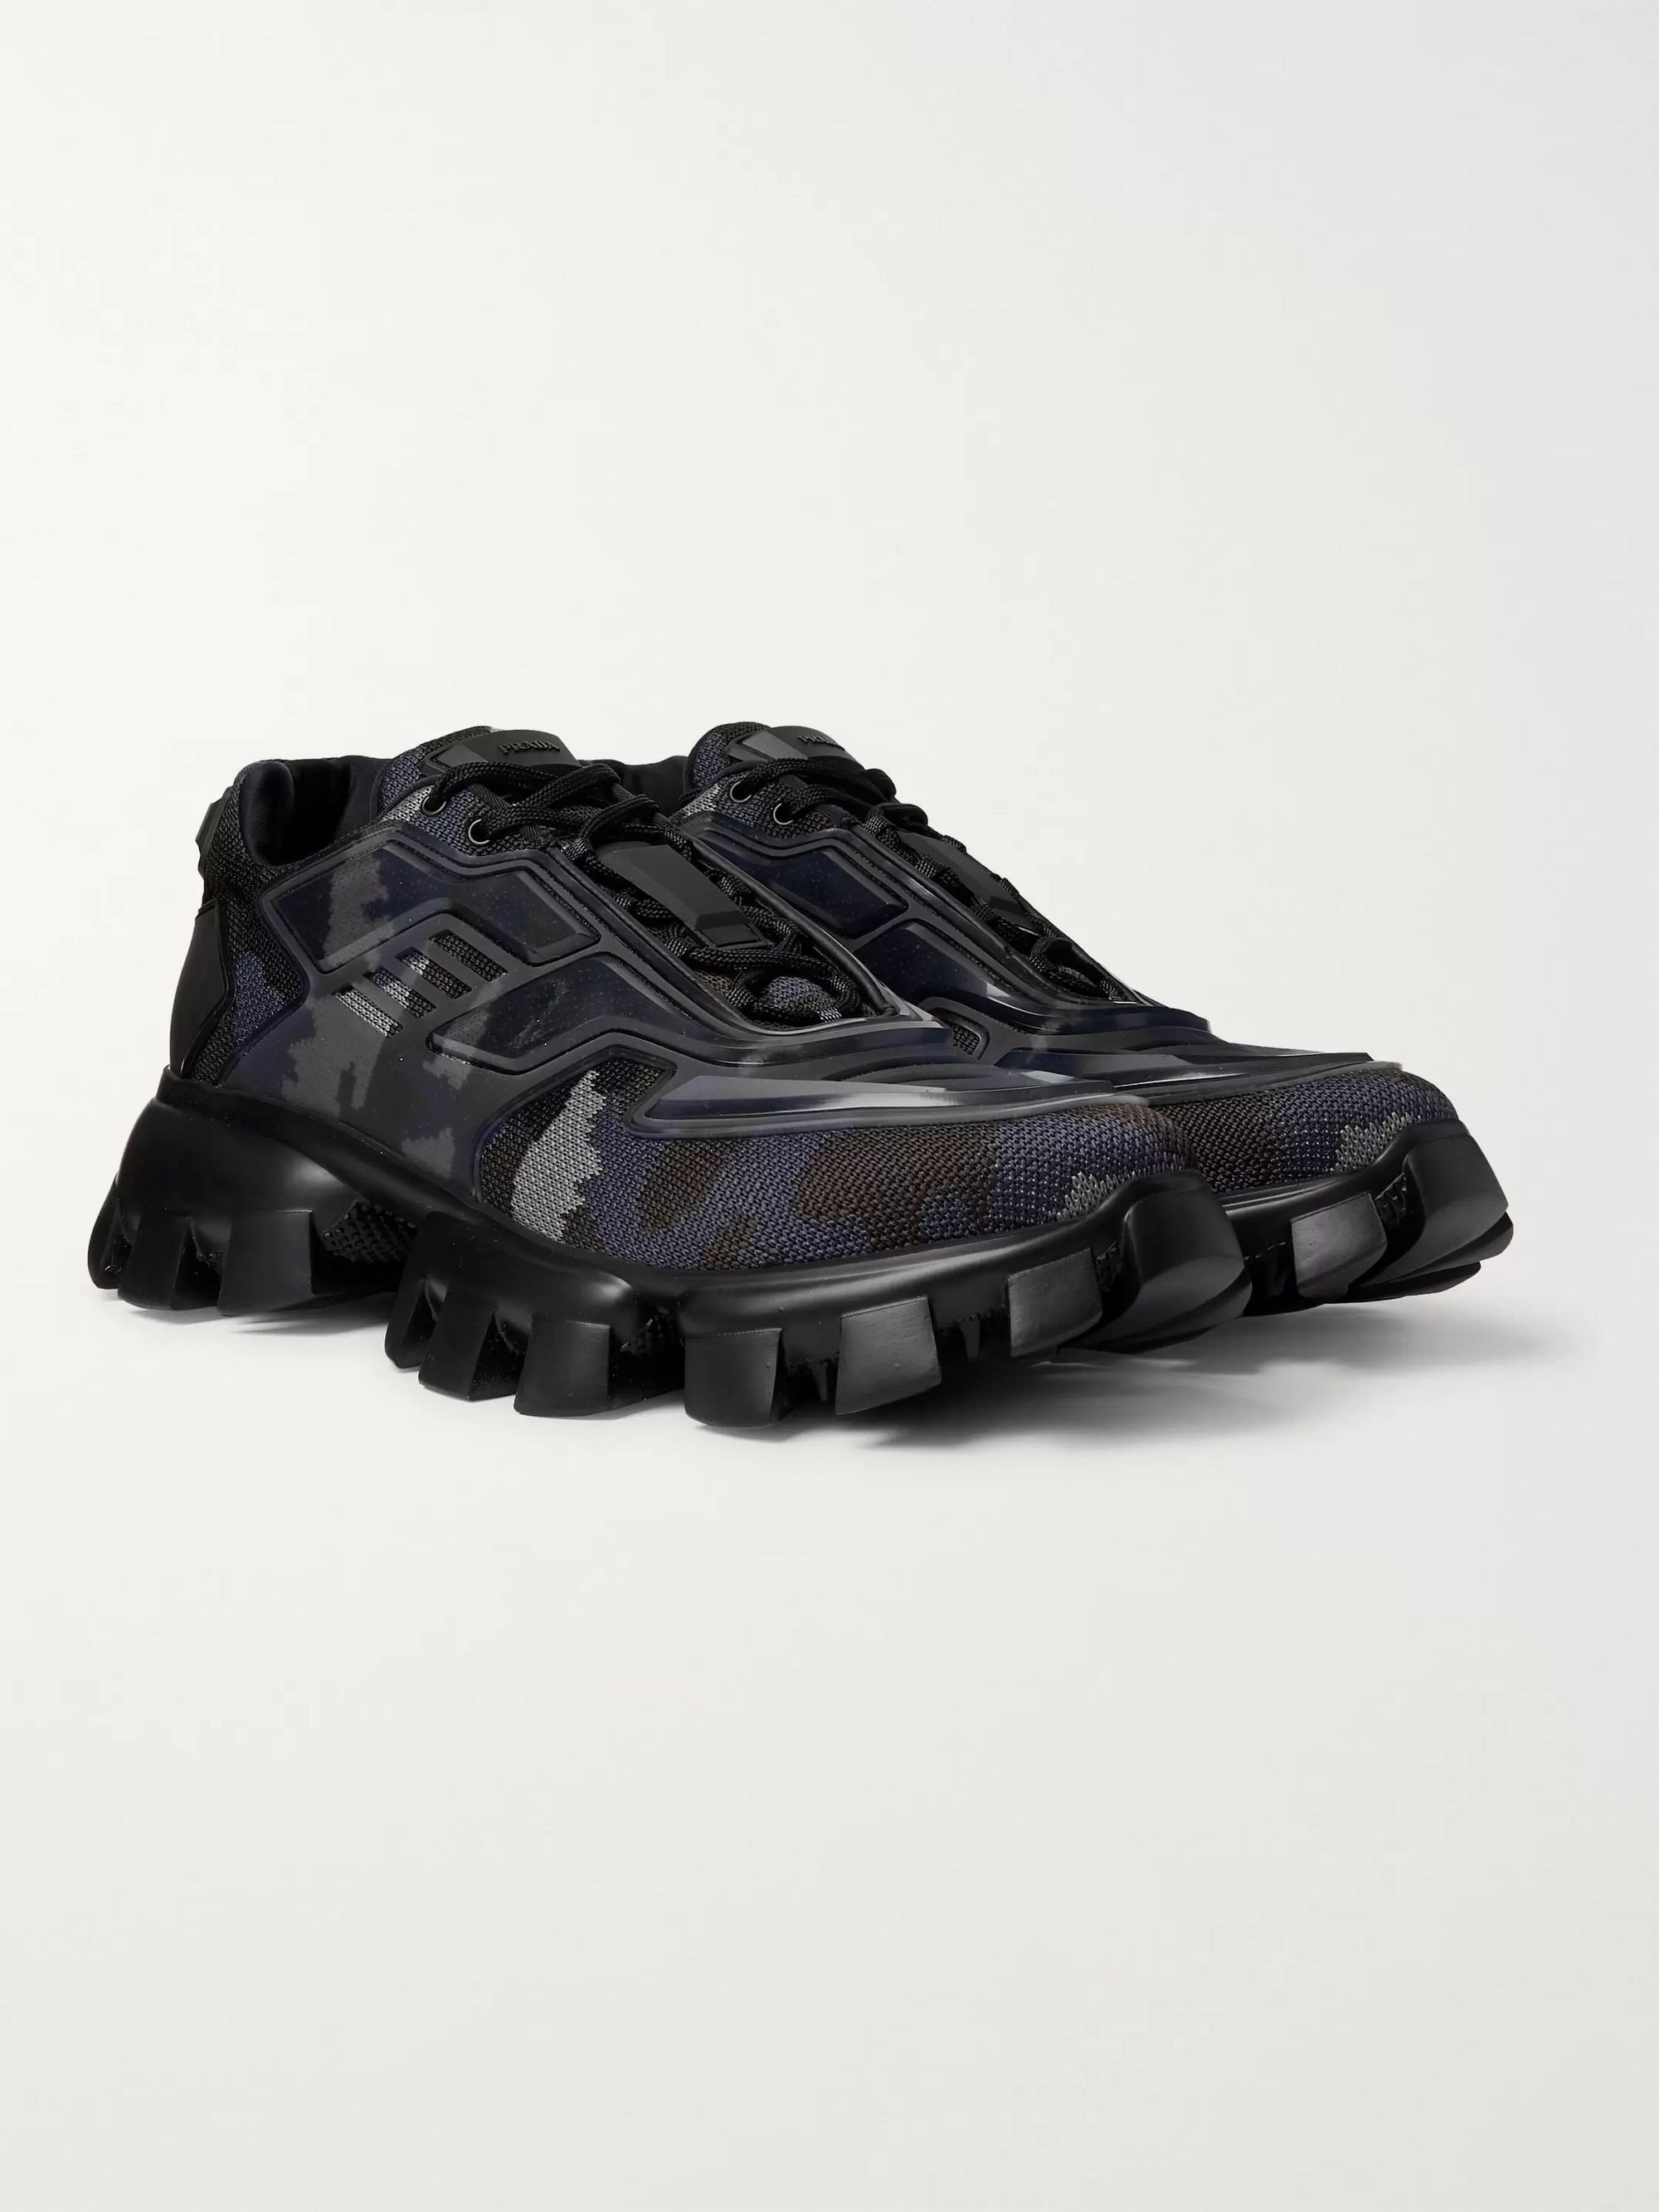 prada thunder shoes, OFF 72%,welcome to